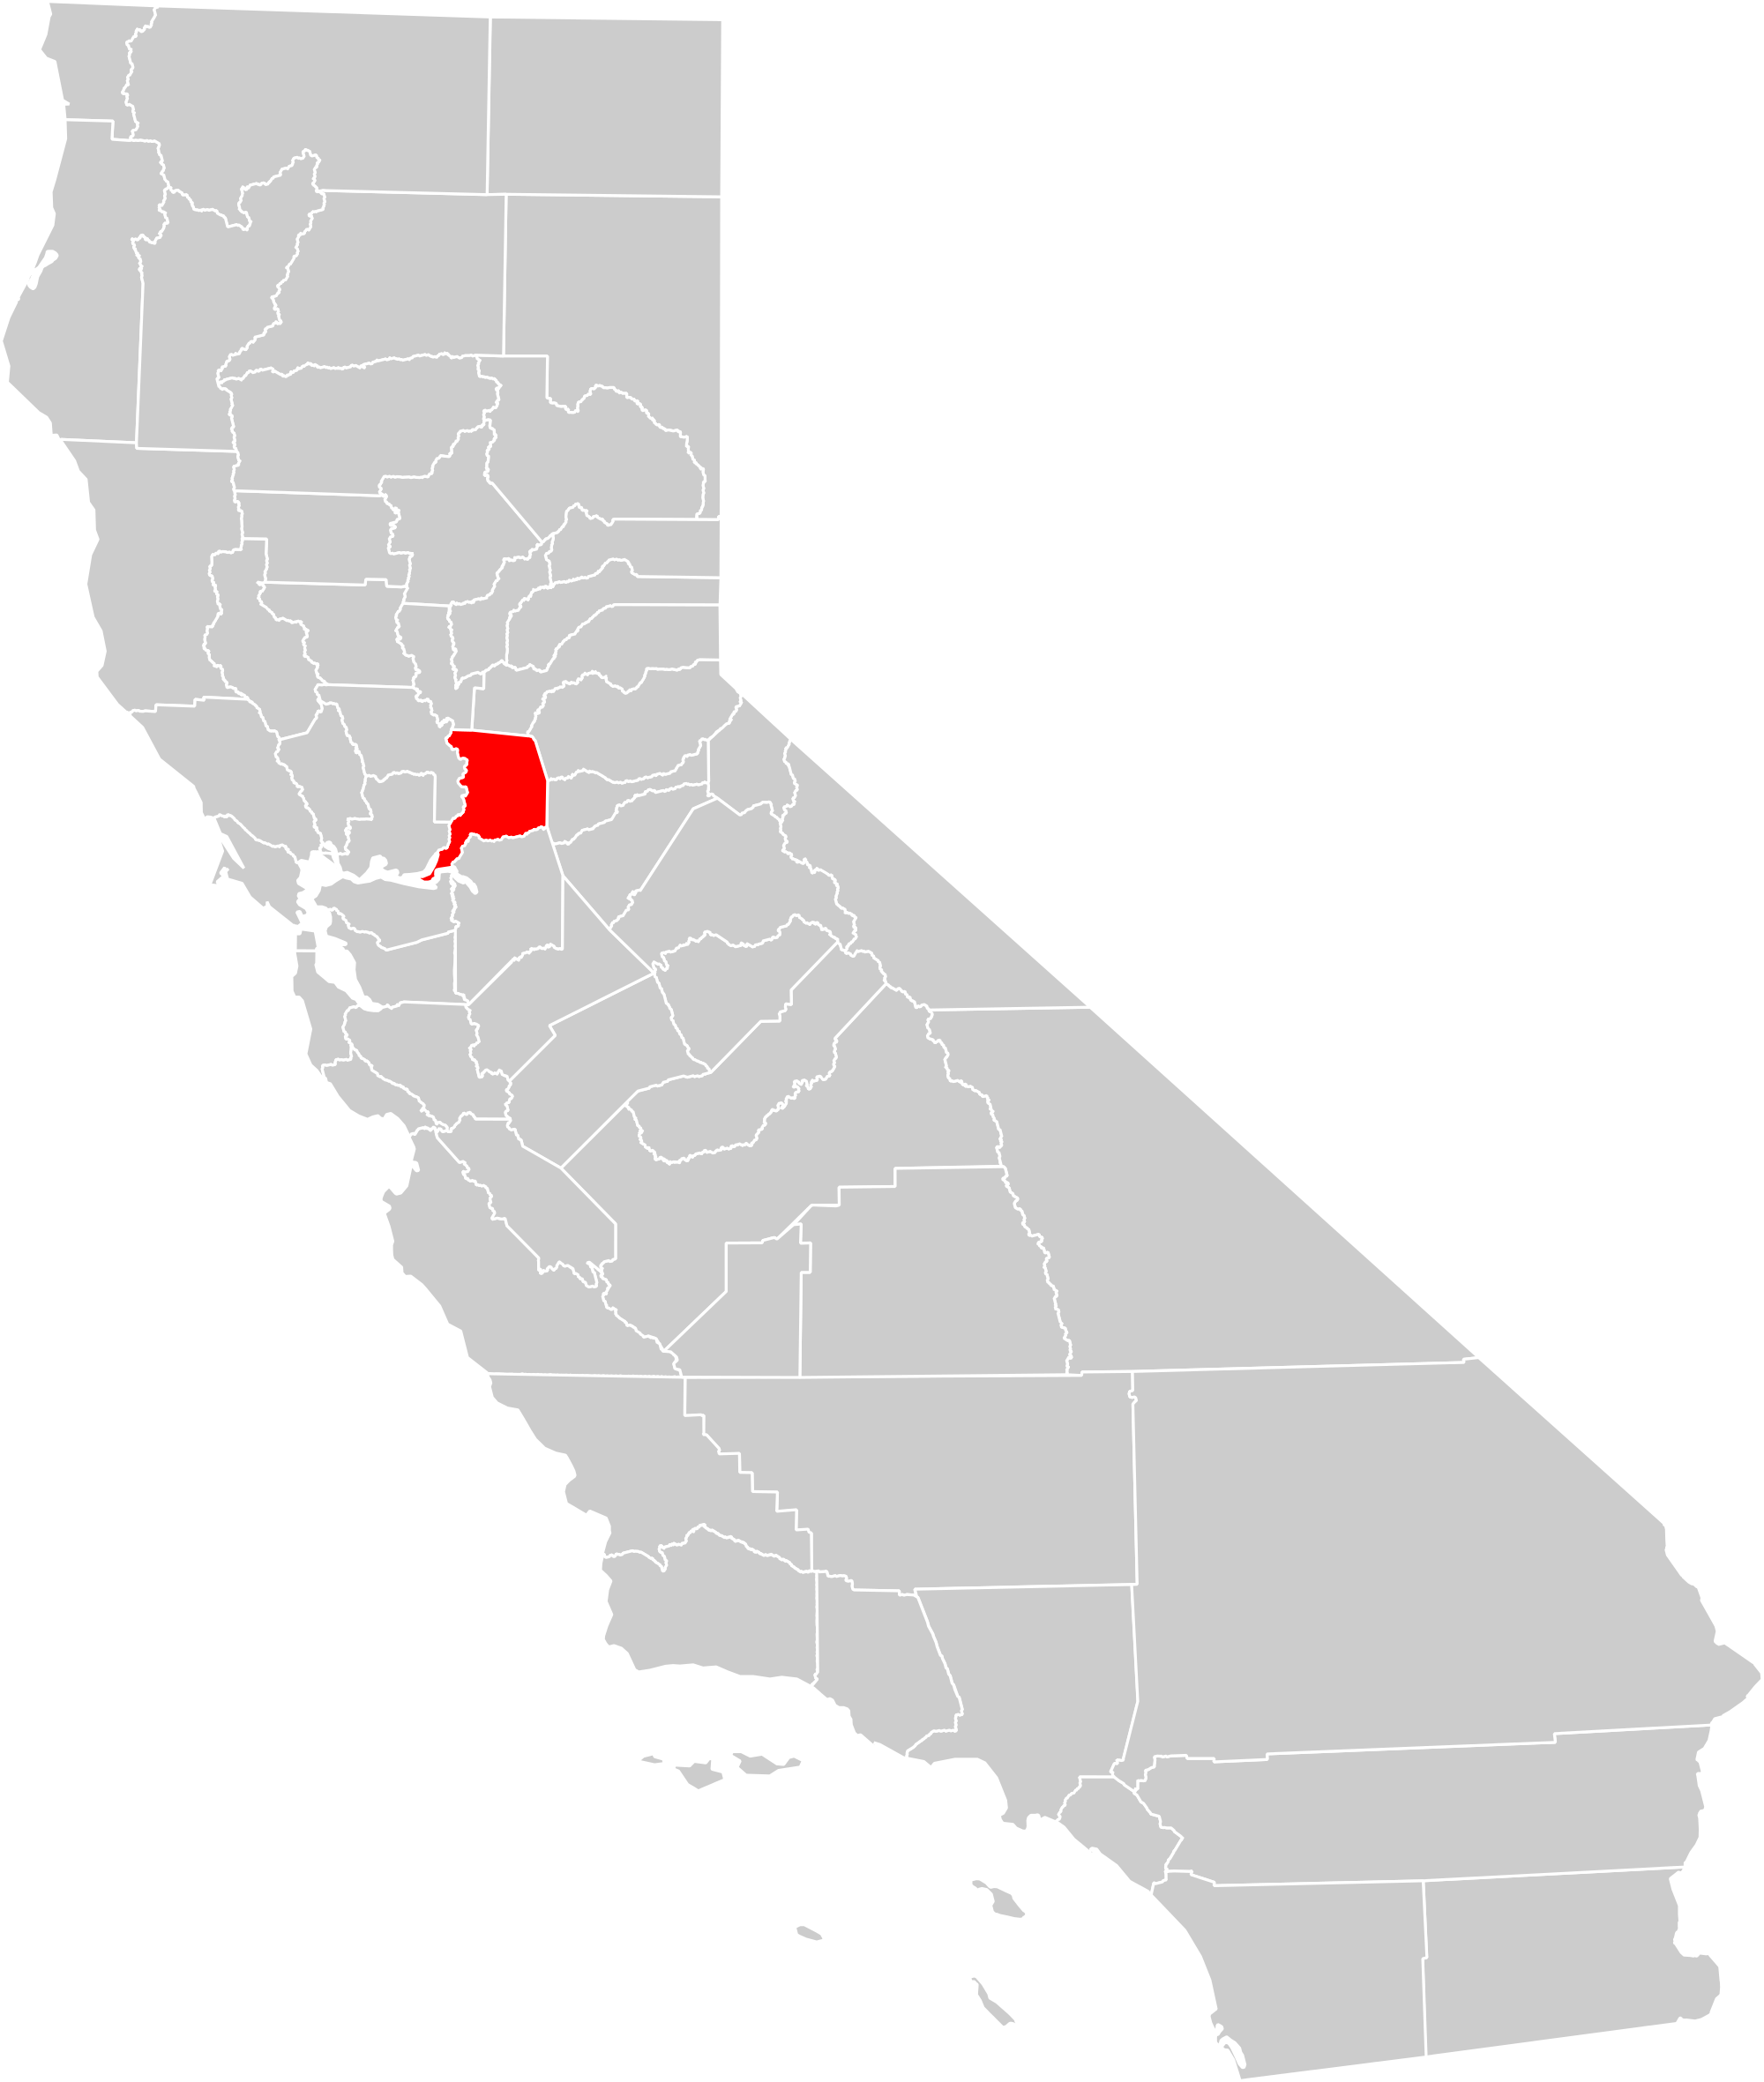 Clipart map of california image black and white download File:California county map (Sacramento County highlighted).svg ... image black and white download